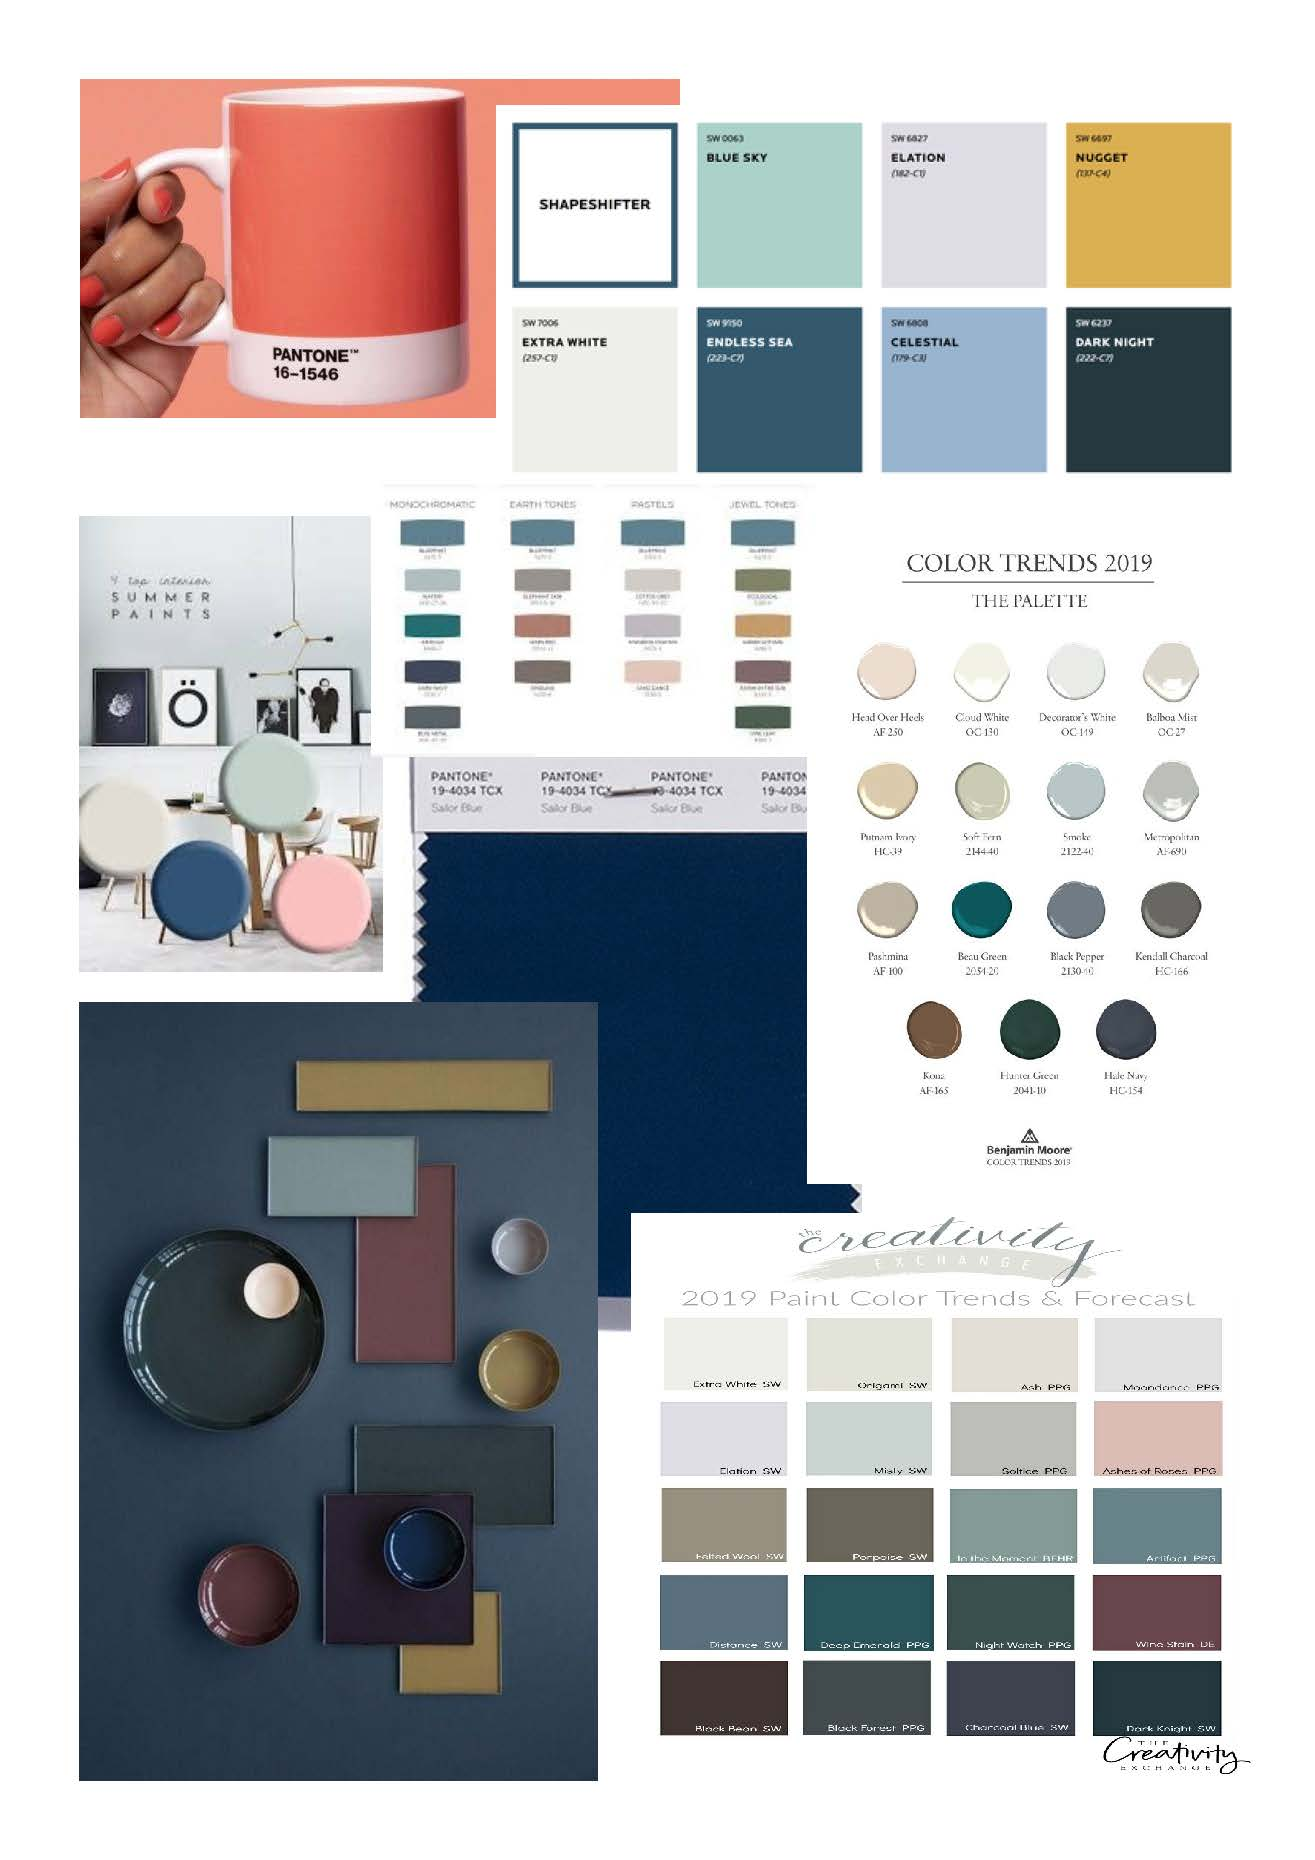 Colours of 2019? Pantone's colour of the year included at the top left of the image